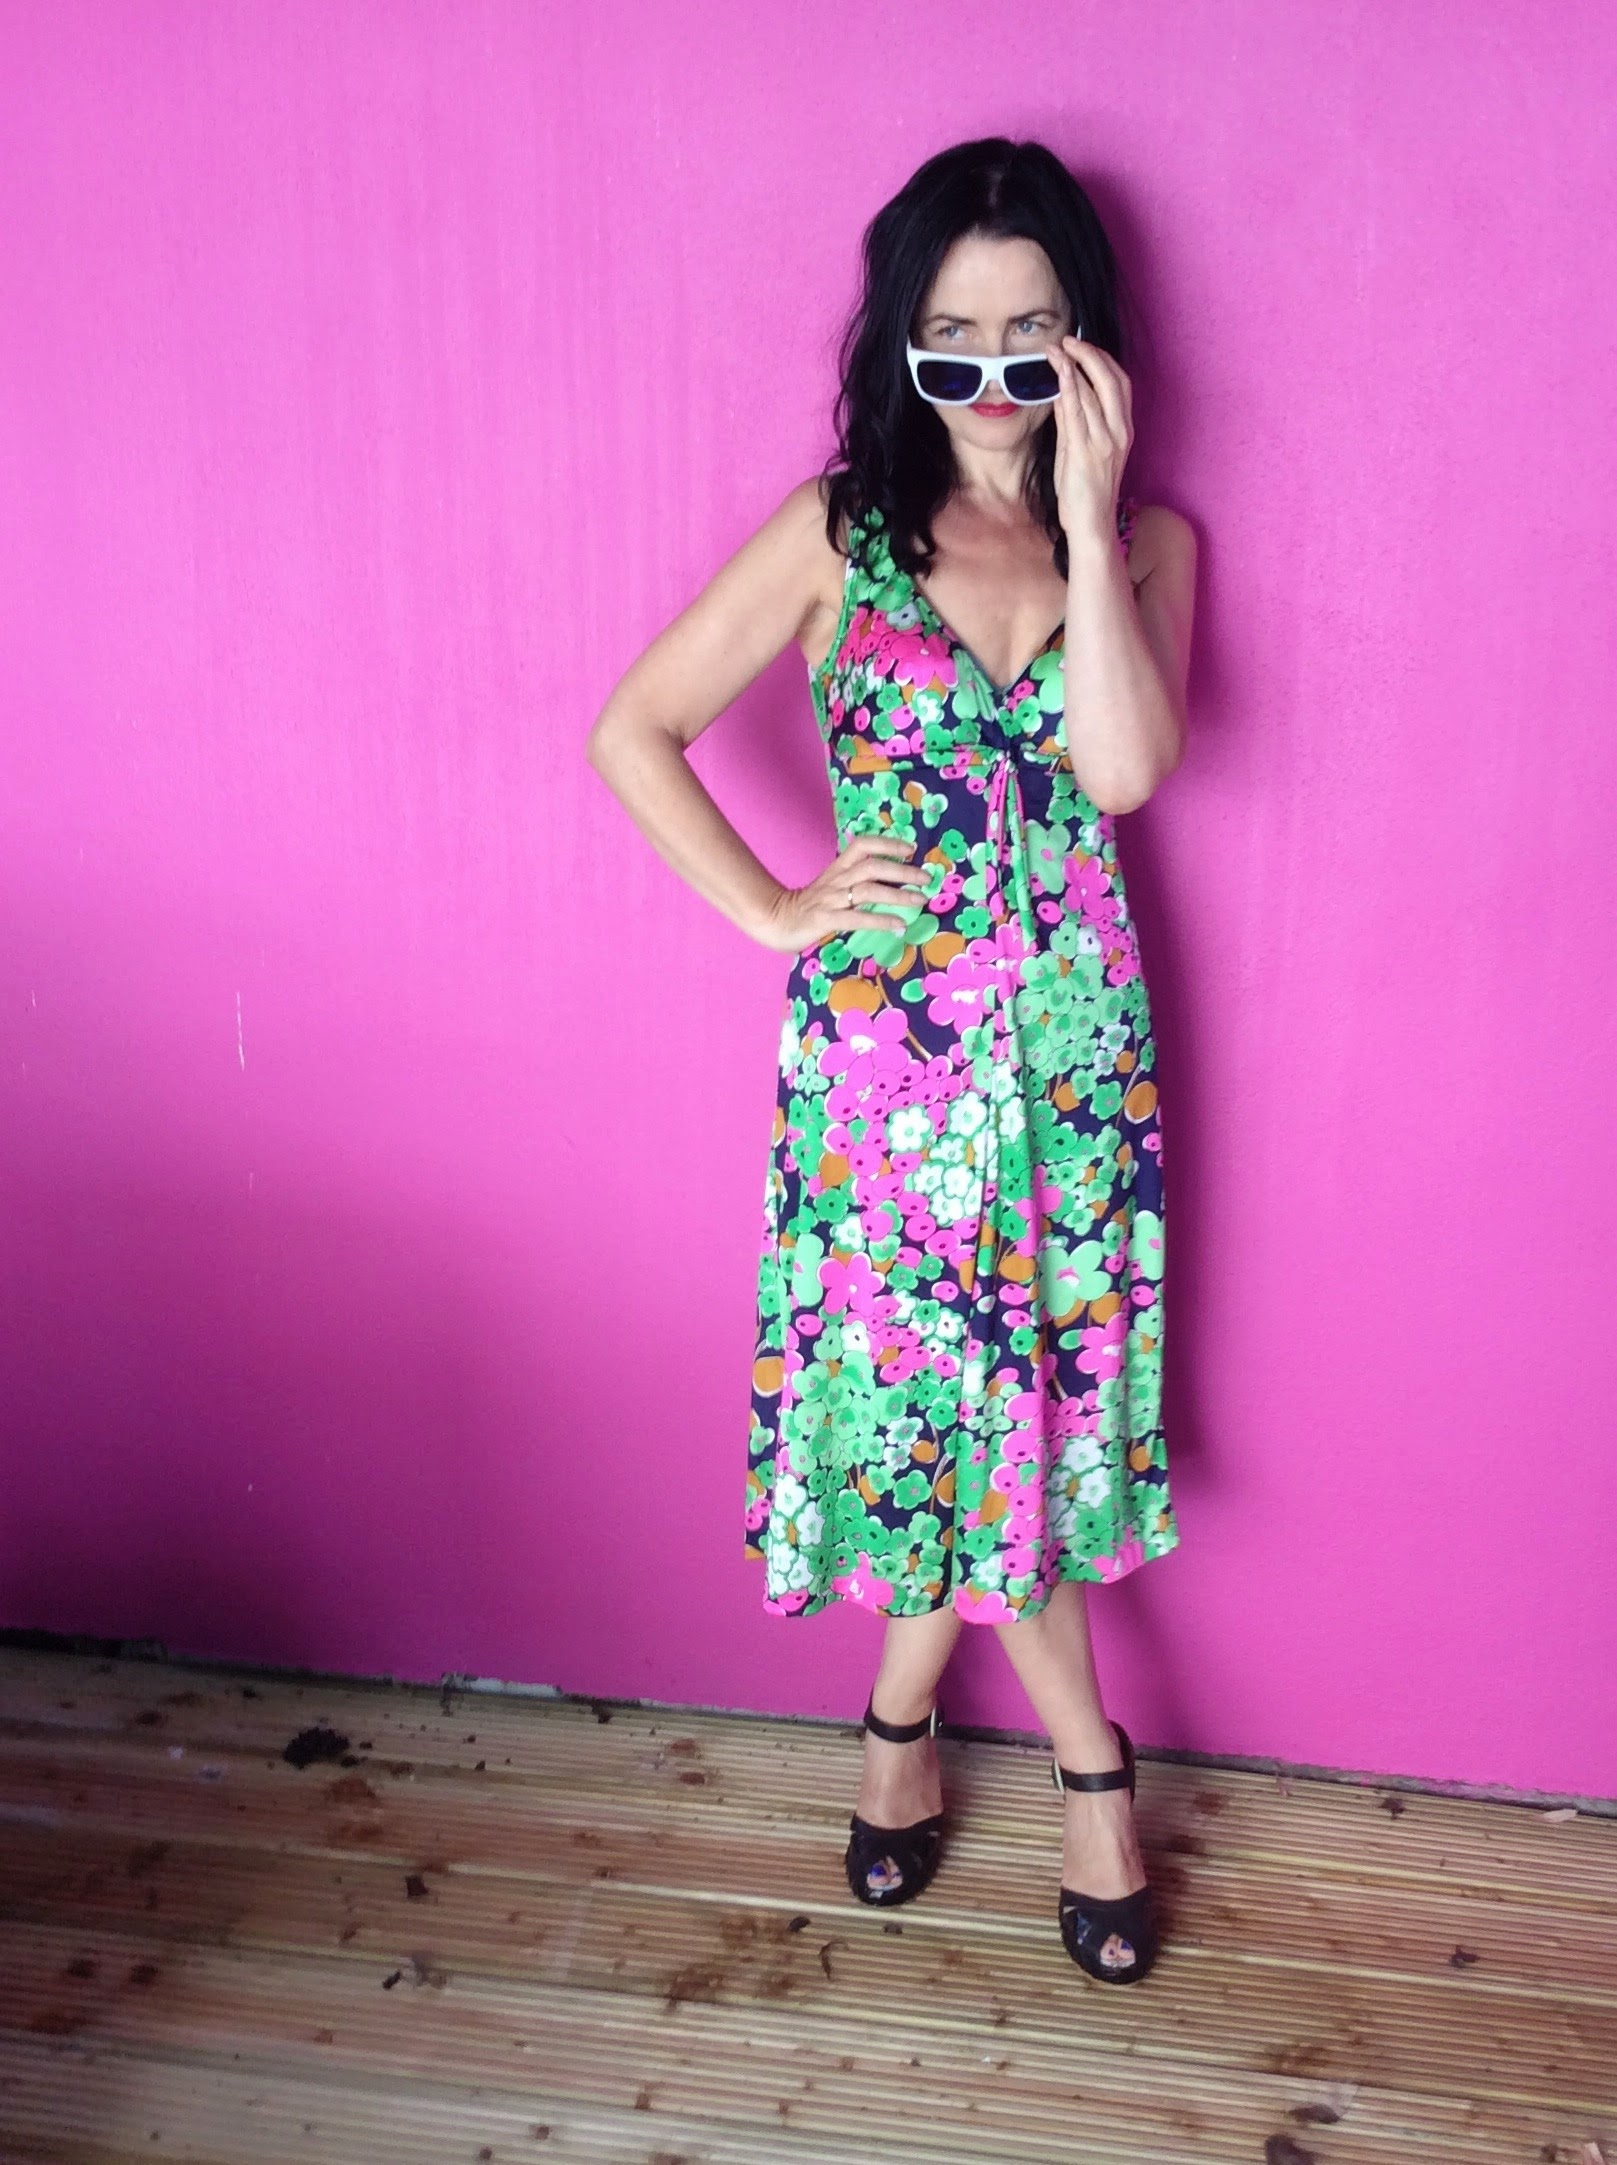 Tea Dress worn with white shades from Primark/Penneys and vintage inspired shoes from Shelly's of London.